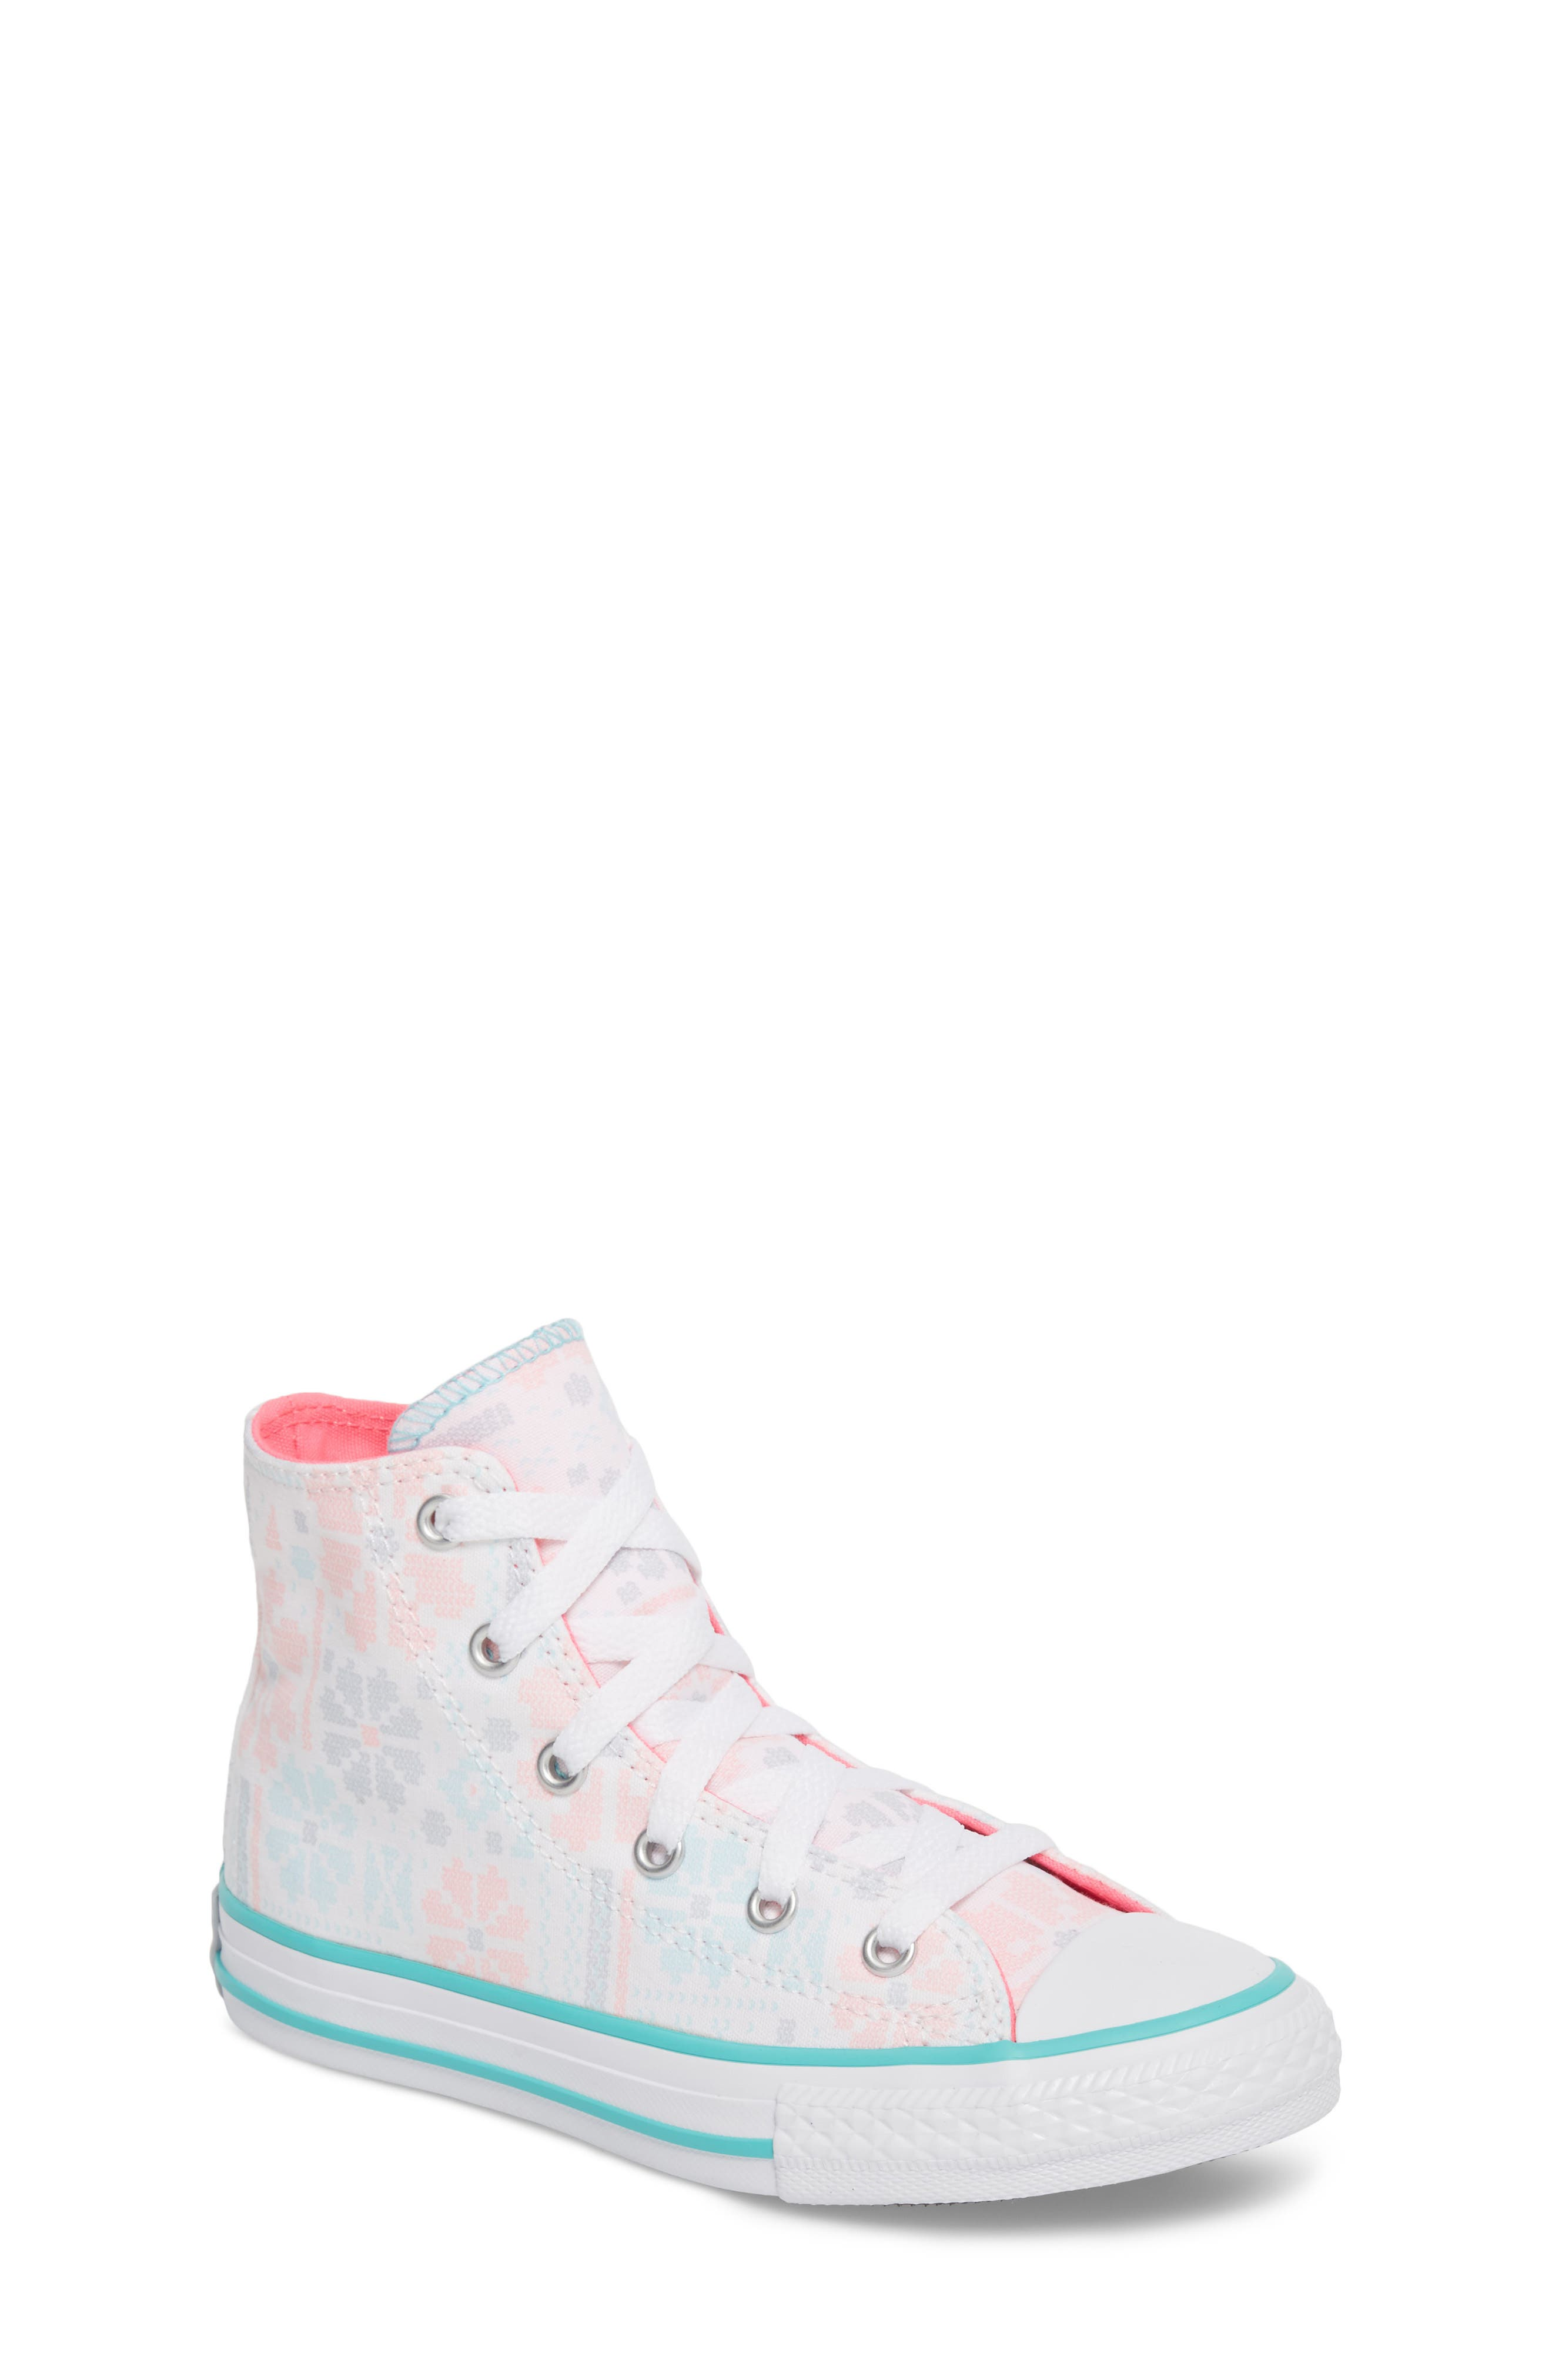 converse shoes high tops for girls. converse chuck taylor® all star® high top sneaker (toddler, little kid \u0026 shoes tops for girls